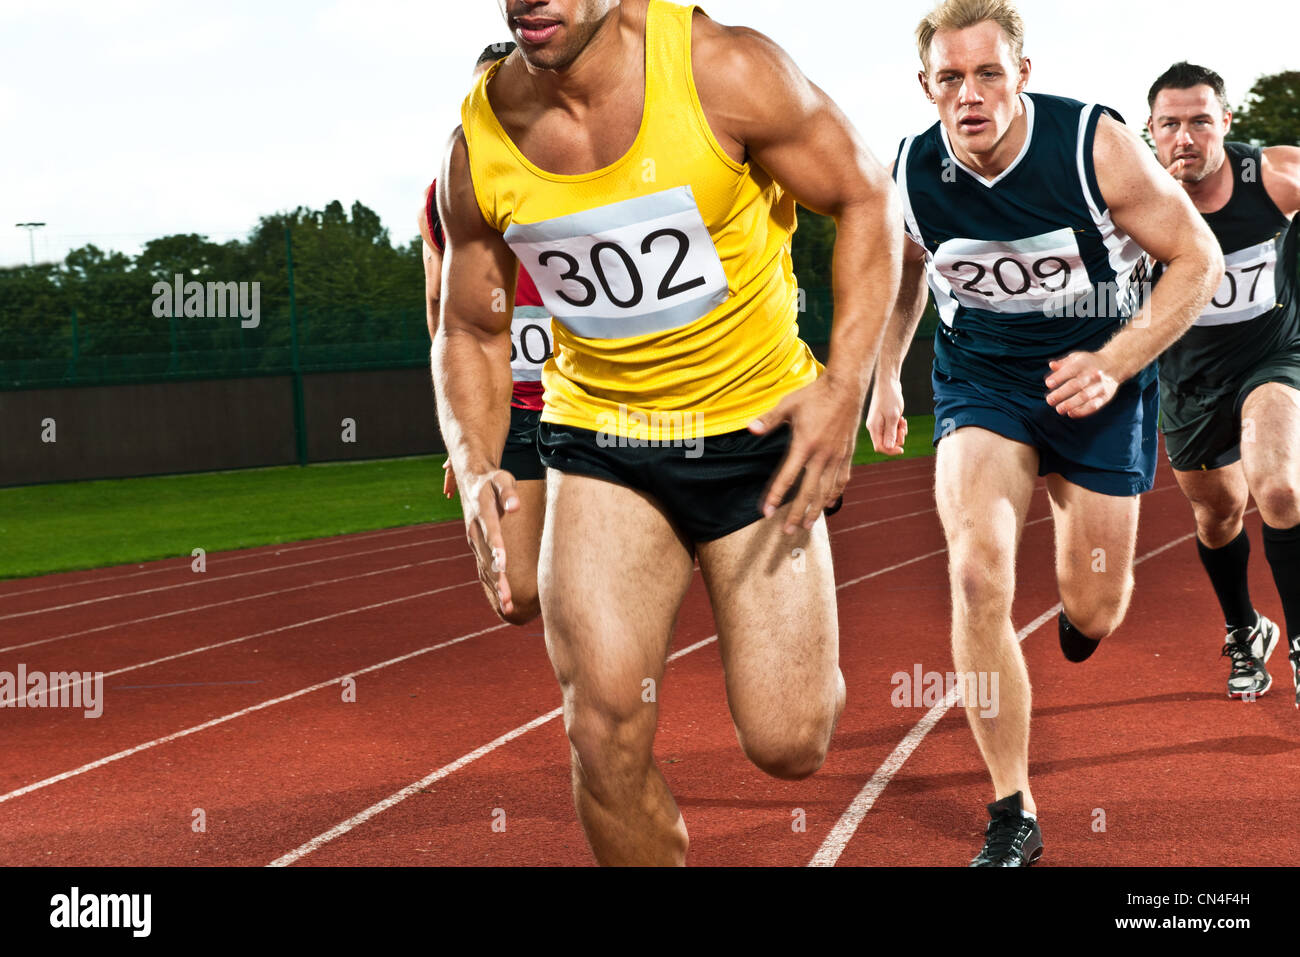 Athletes running on sportstrack - Stock Image